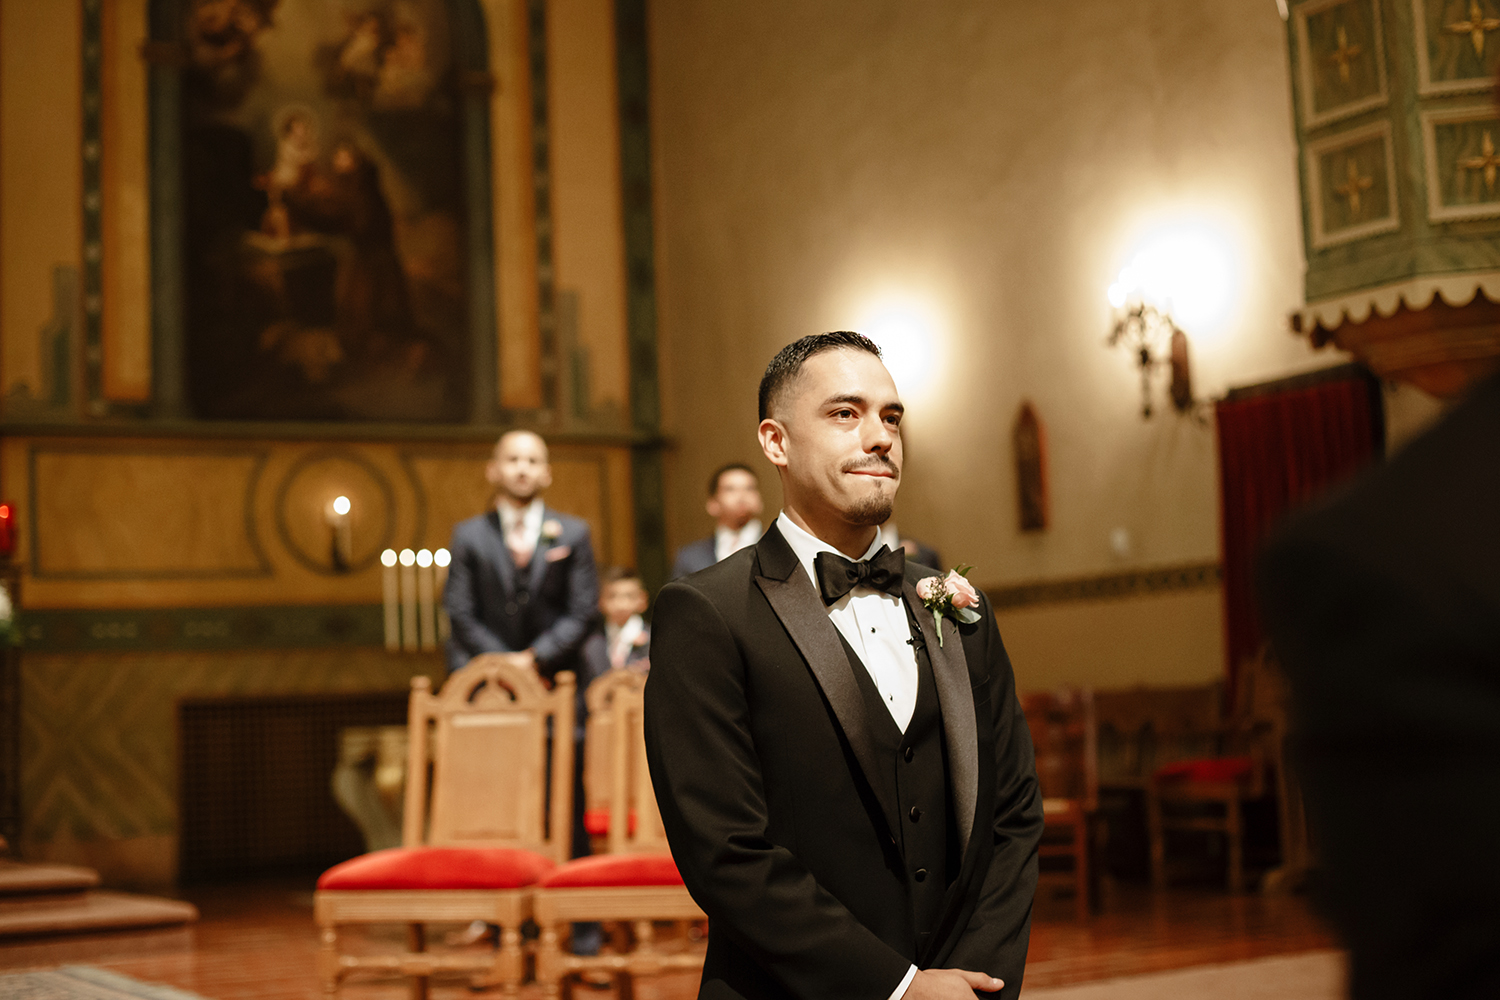 Groom waiting at the alter for his bride to walk down the aisle during their wedding in Mission Santa Clara de Asís.